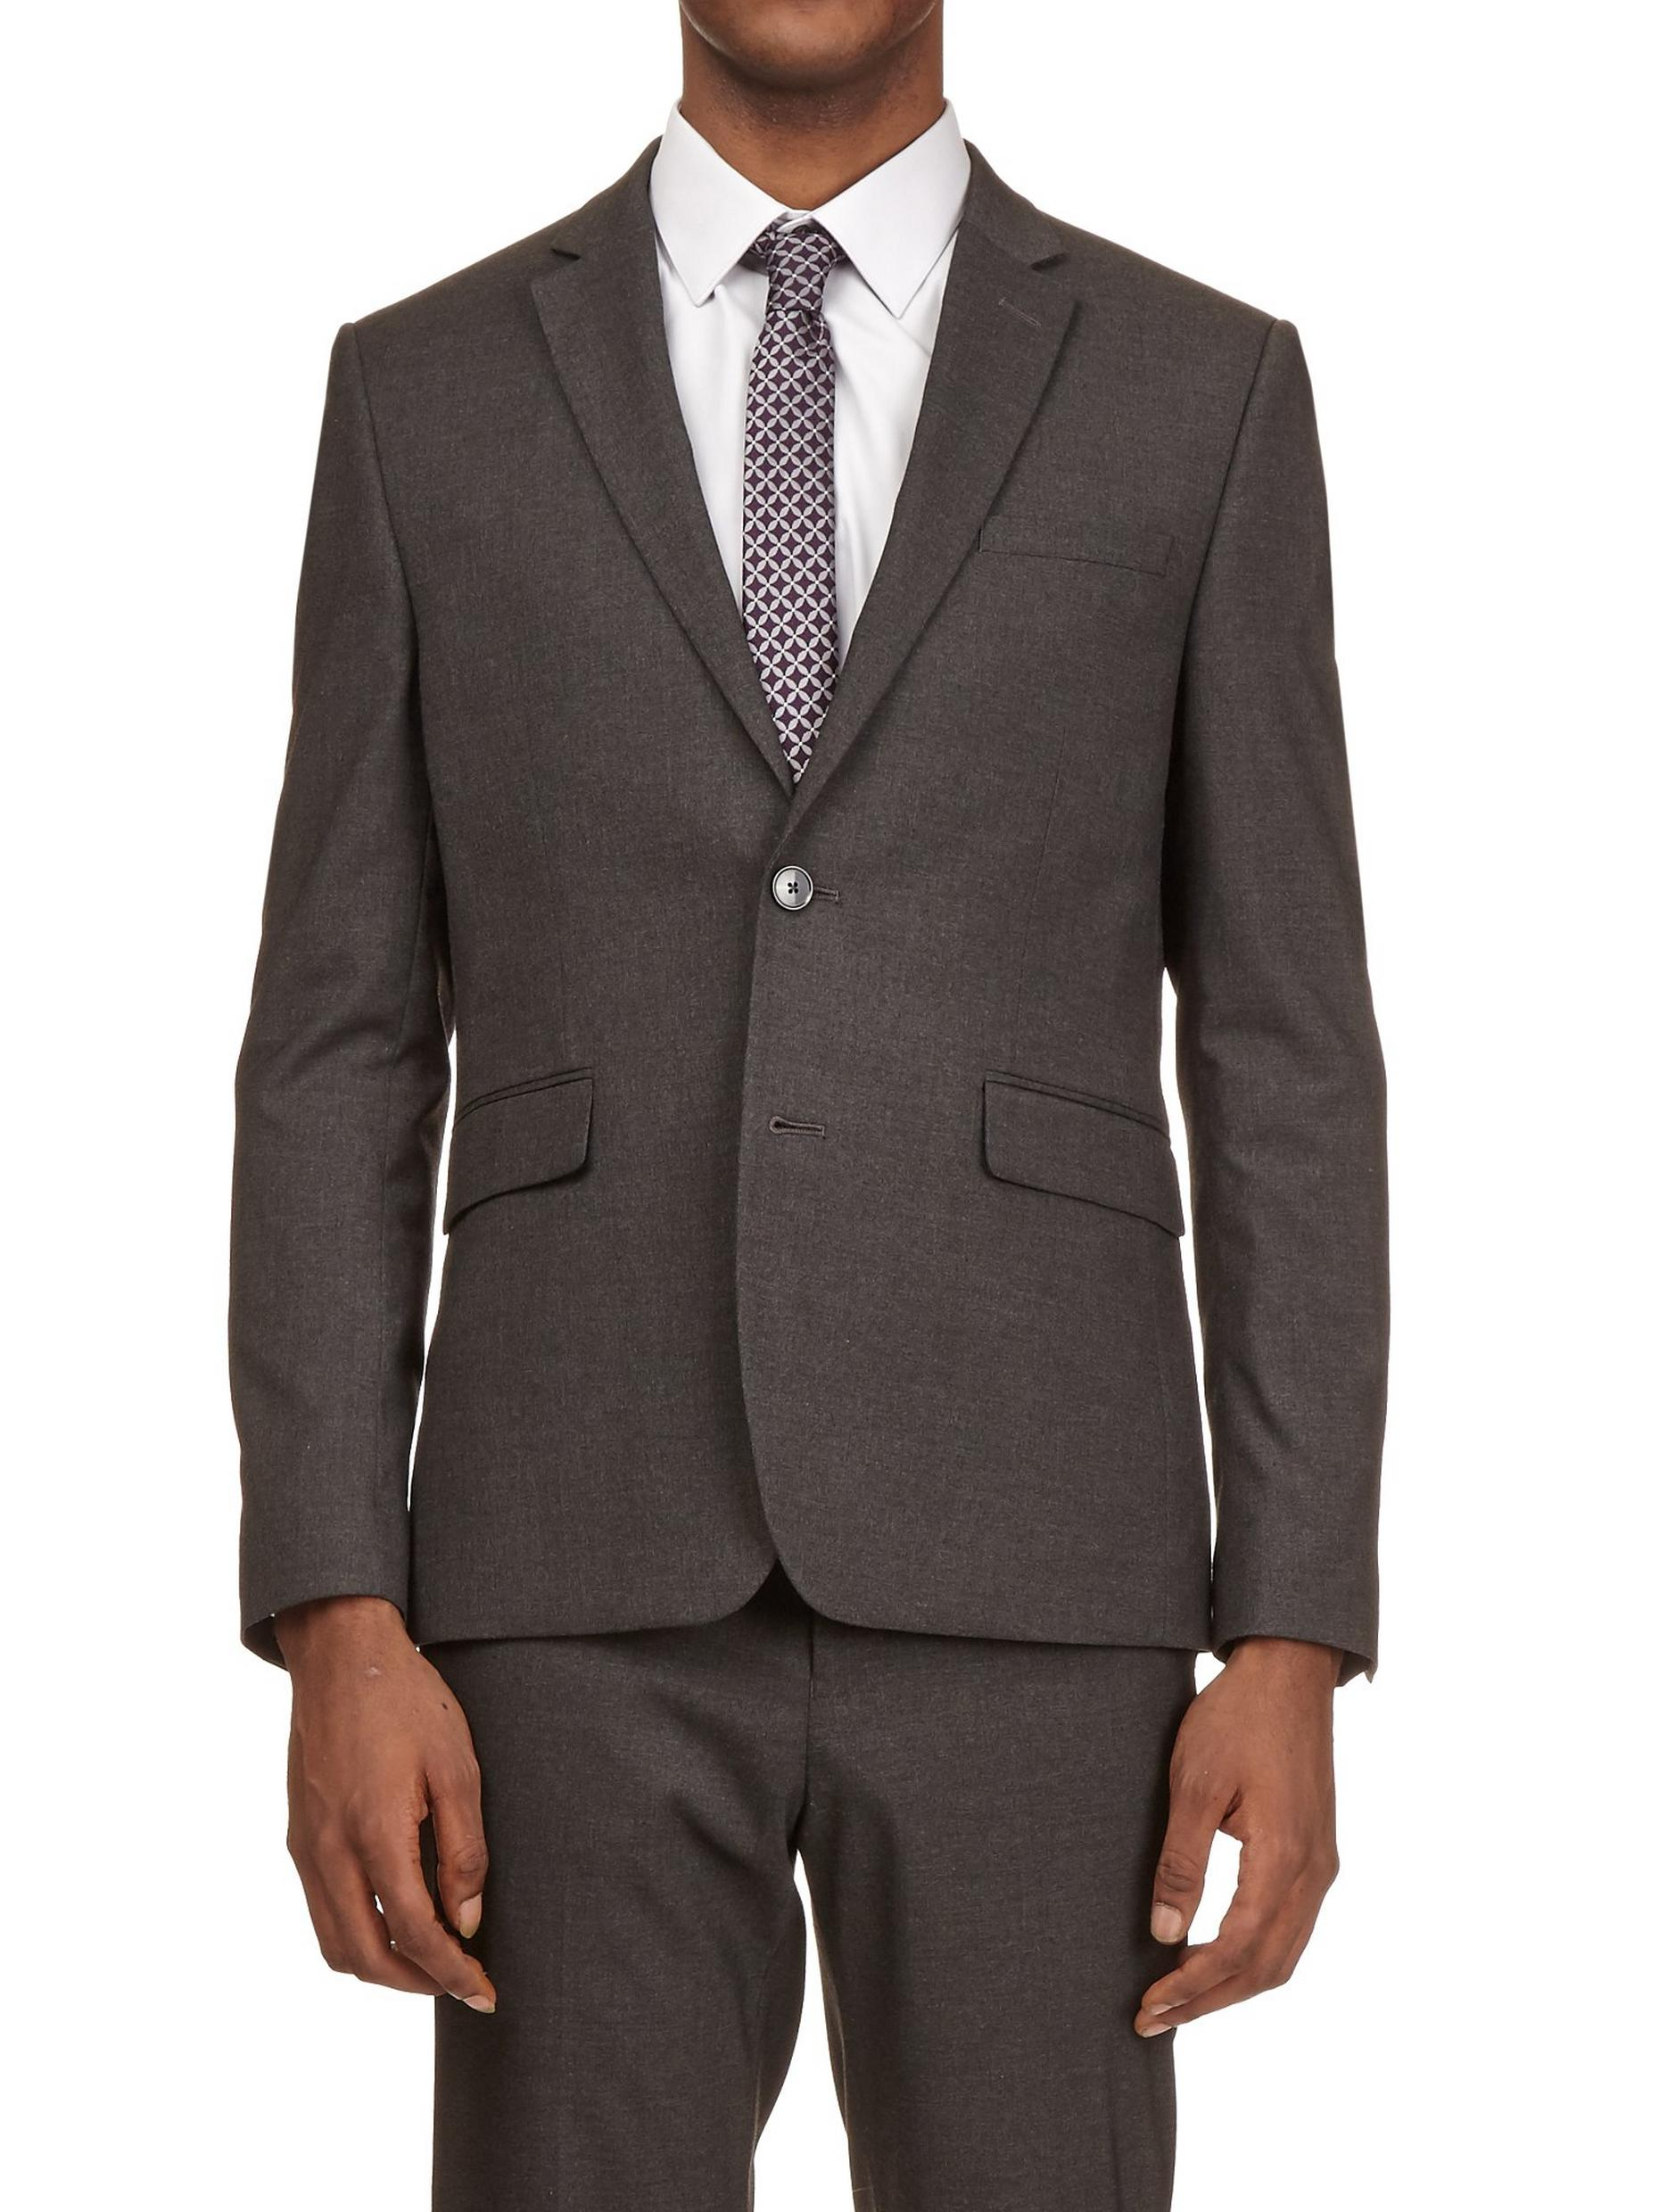 Charcoal Slim Fit Essential Suit Jacket